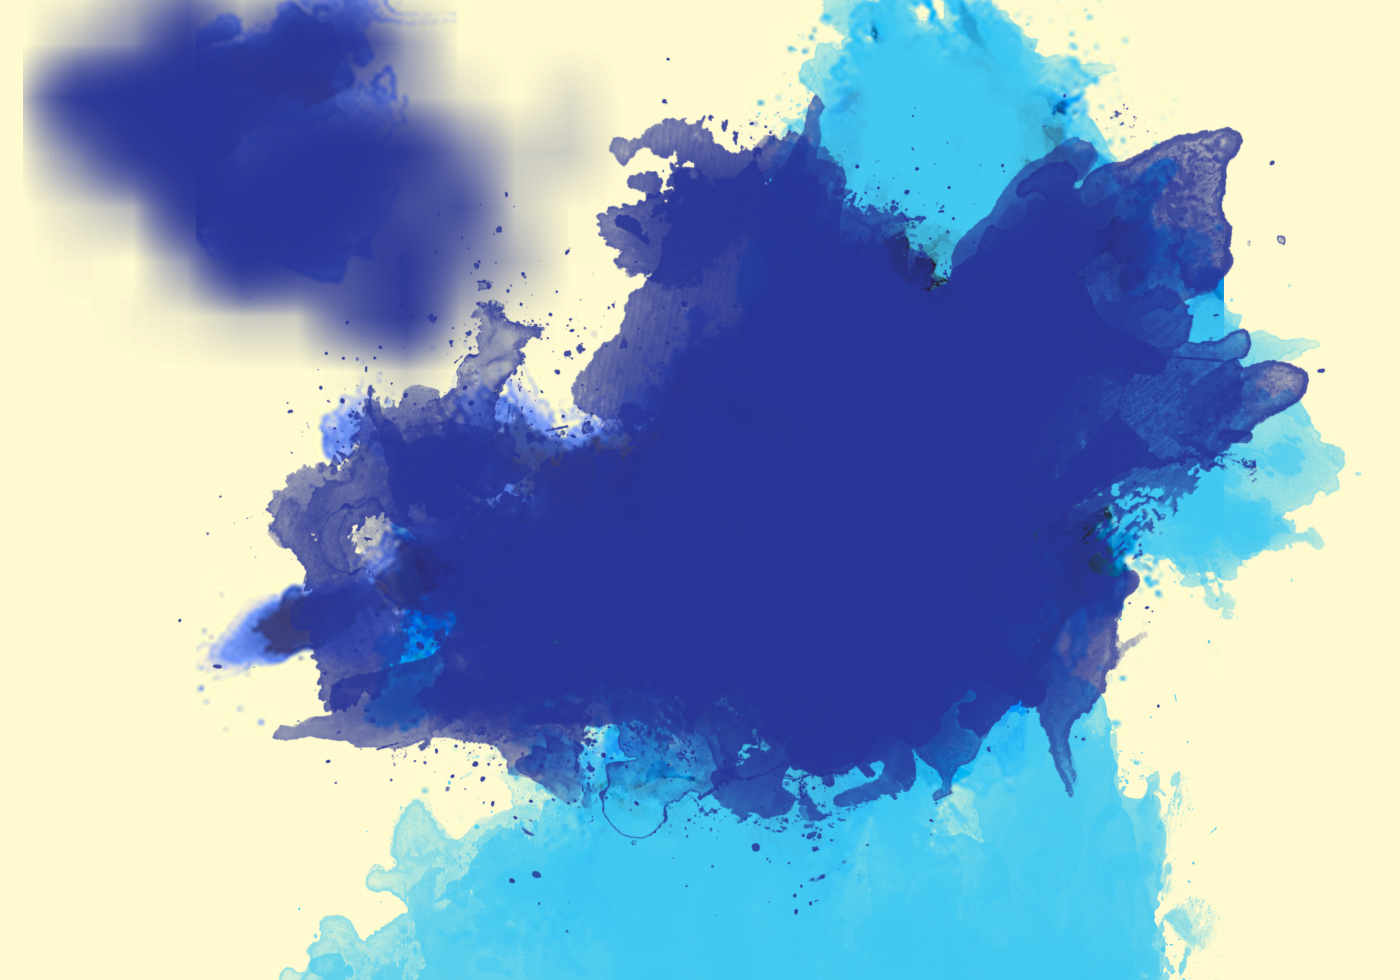 free watercolor brush for photoshop  »  7 Picture »  Awesome ..!